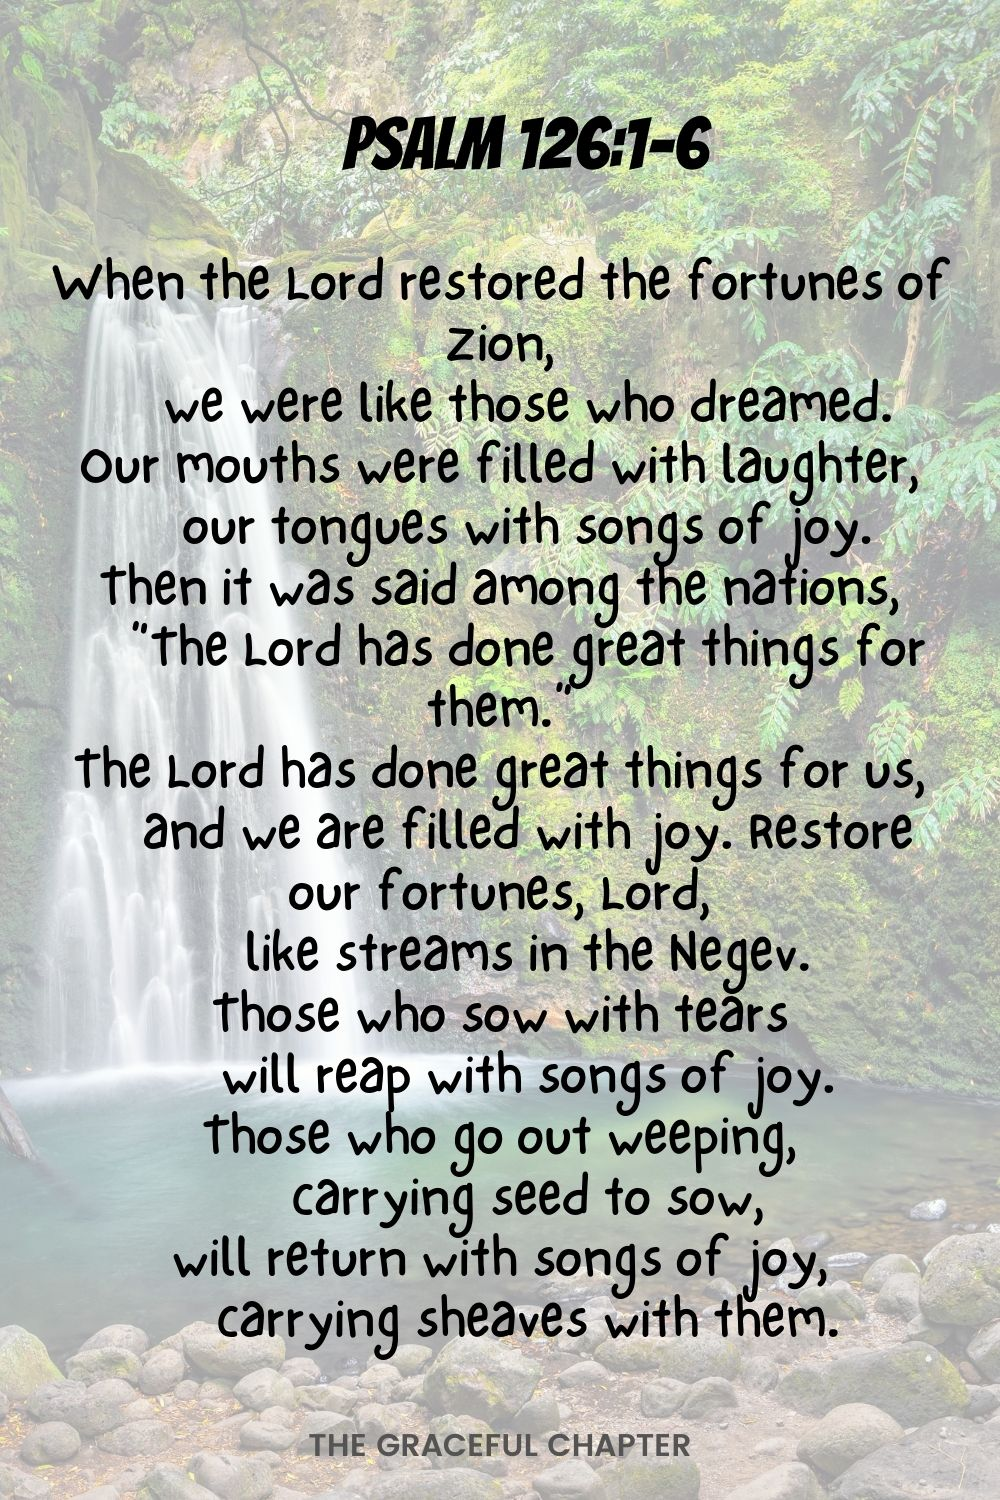 """When the Lord restored the fortunes of Zion, we were like those who dreamed. Our mouths were filled with laughter, our tongues with songs of joy. Then it was said among the nations, """"The Lord has done great things for them."""" The Lord has done great things for us, and we are filled with joy. Restore our fortunes, Lord, like streams in the Negev. Those who sow with tears will reap with songs of joy. Those who go out weeping, carrying seed to sow, will return with songs of joy, carrying sheaves with them. Psalm 126:1-6"""